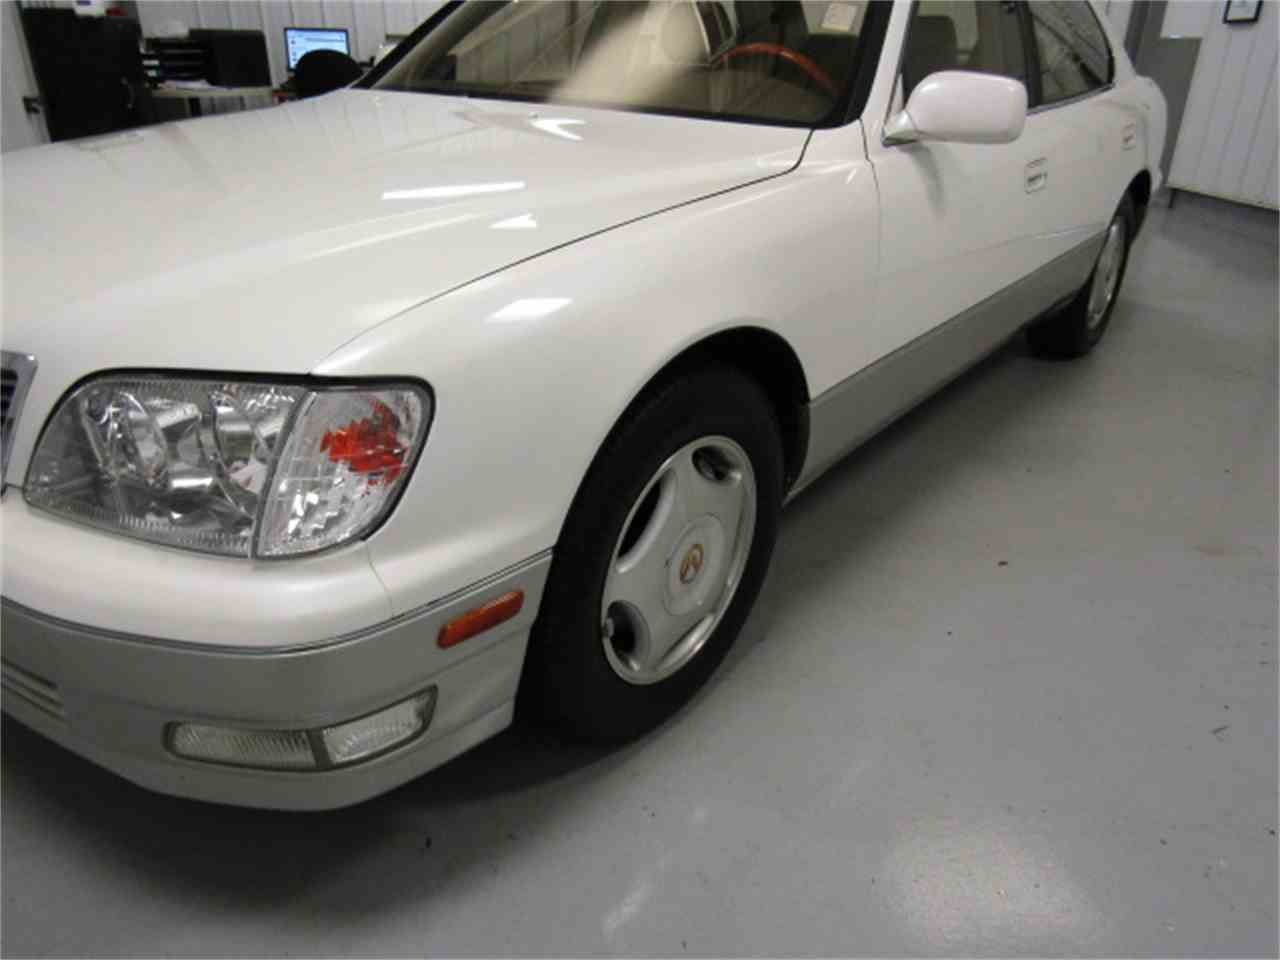 Large Picture of '99 Lexus LS400 located in Christiansburg Virginia - $8,994.00 Offered by Duncan Imports & Classic Cars - JM33